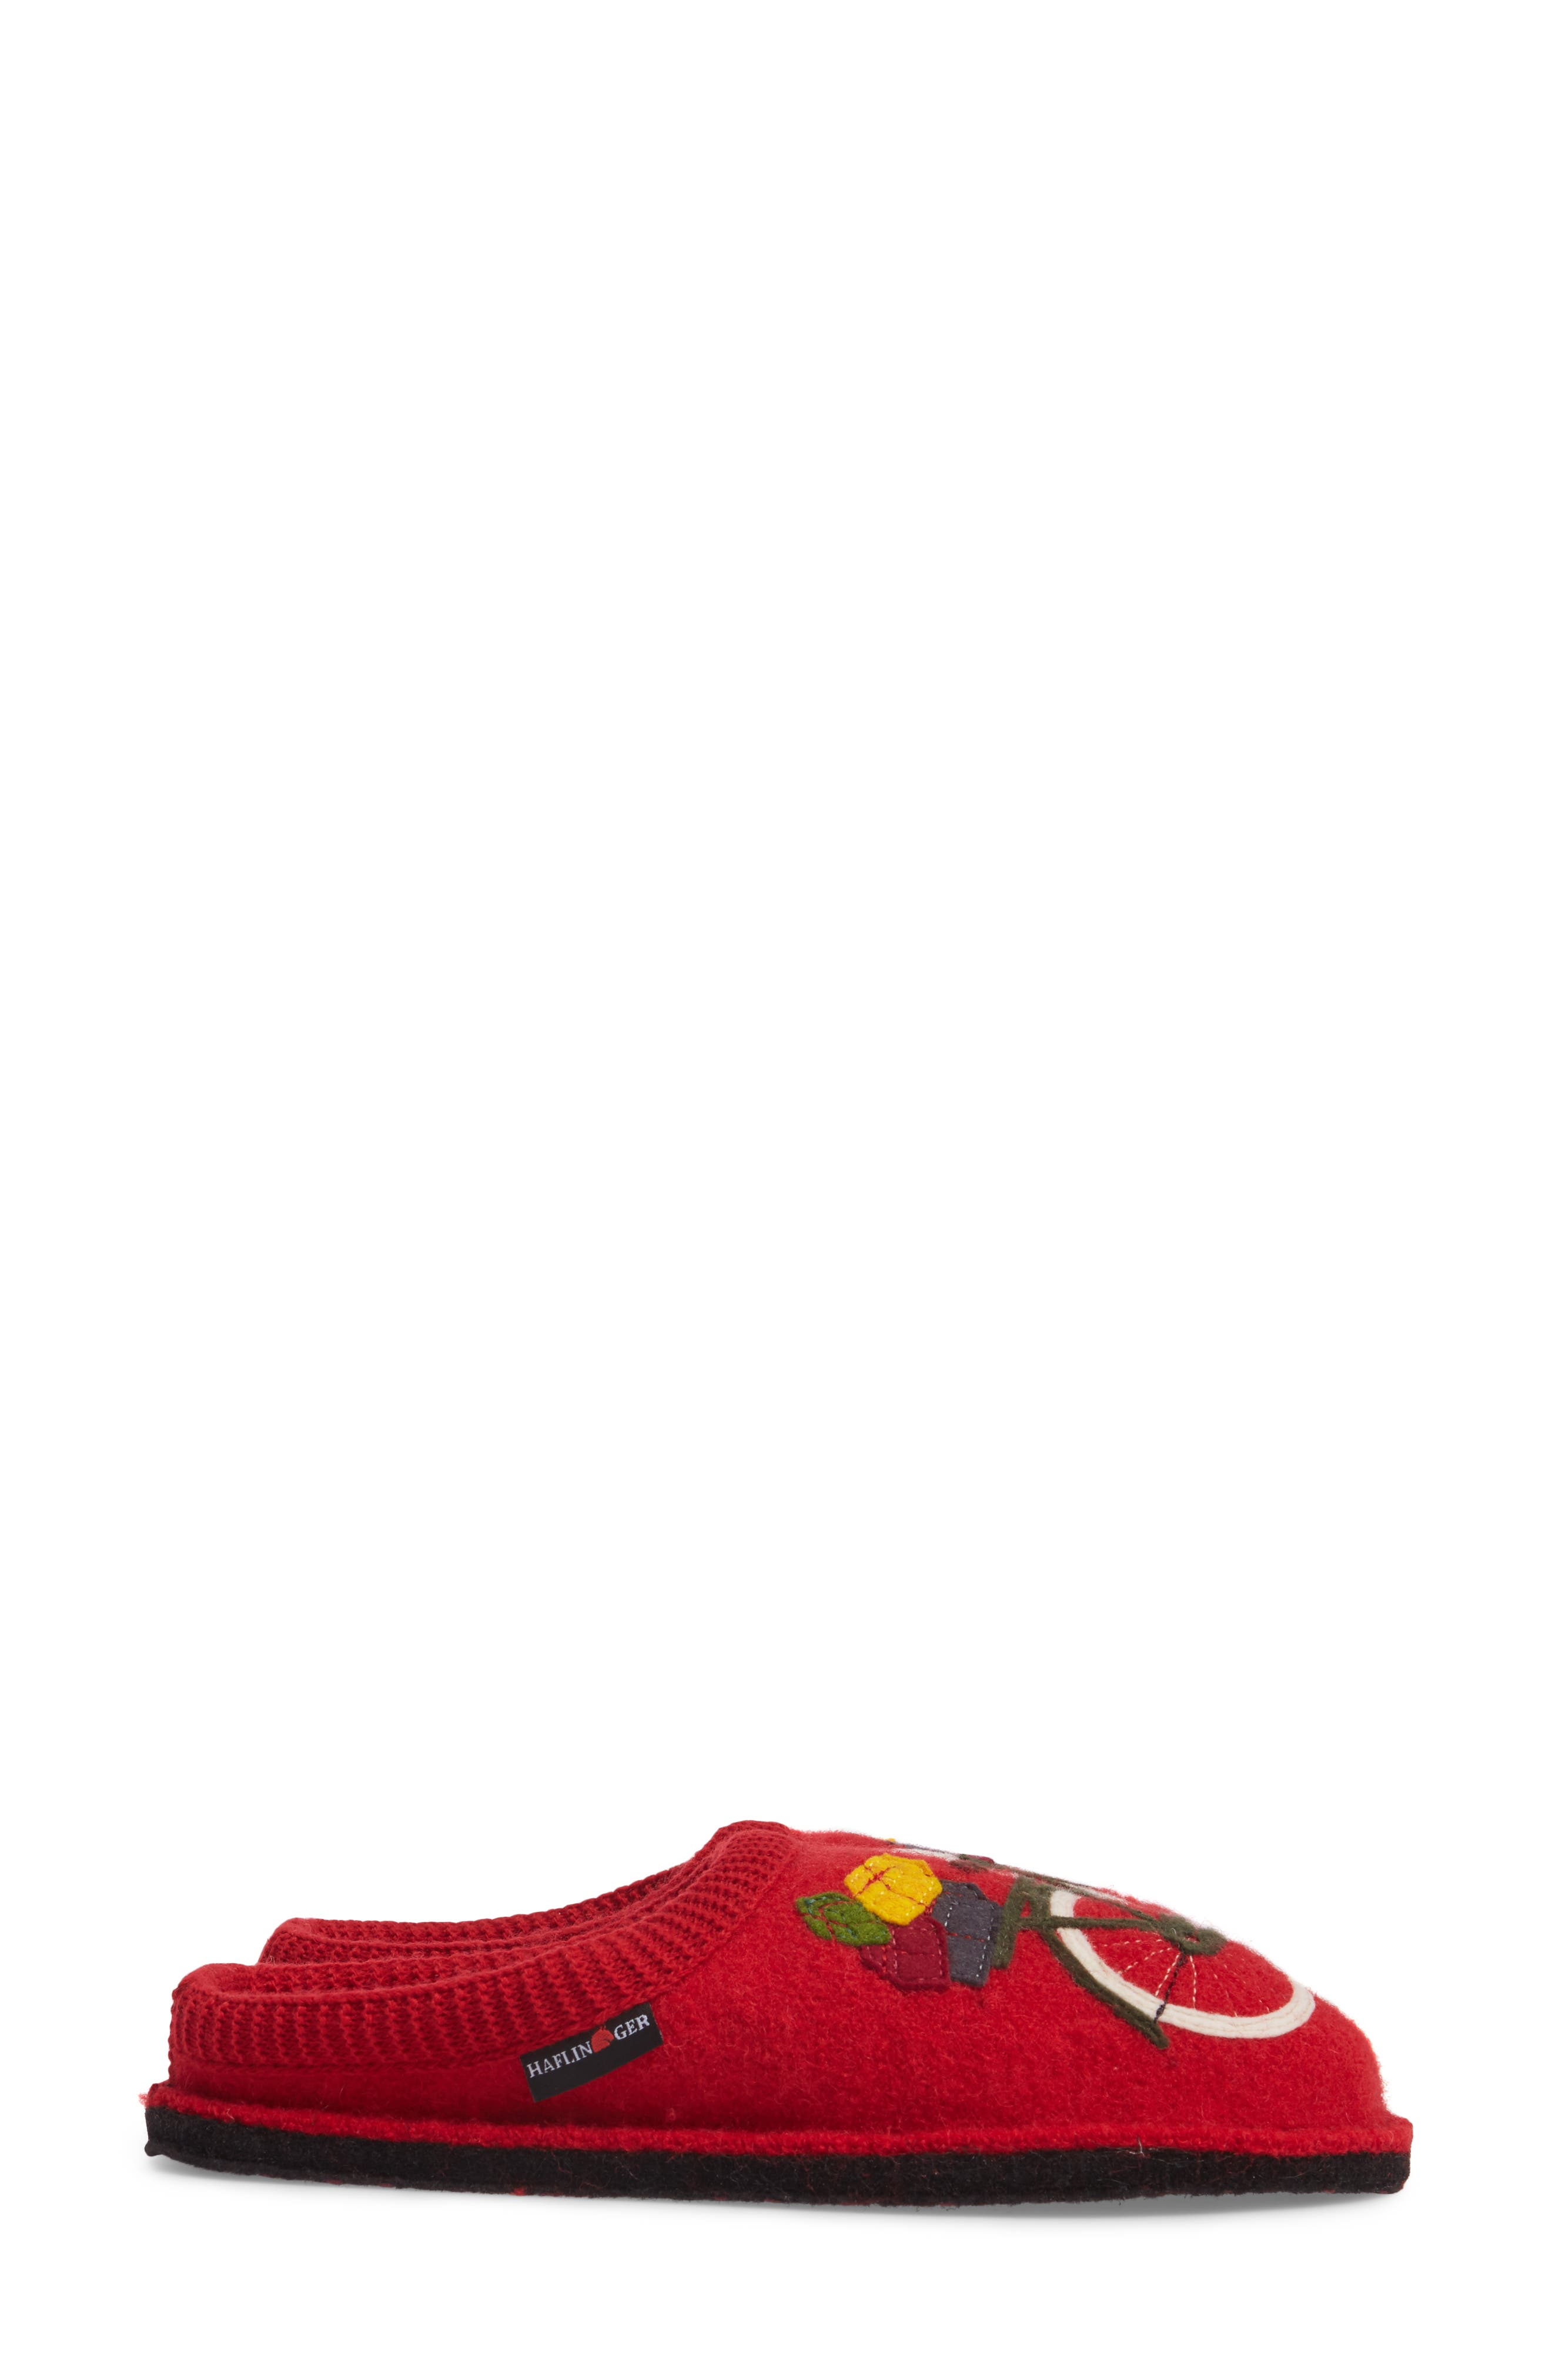 Bicycle Slipper,                             Alternate thumbnail 4, color,                             Bicycle Red Wool